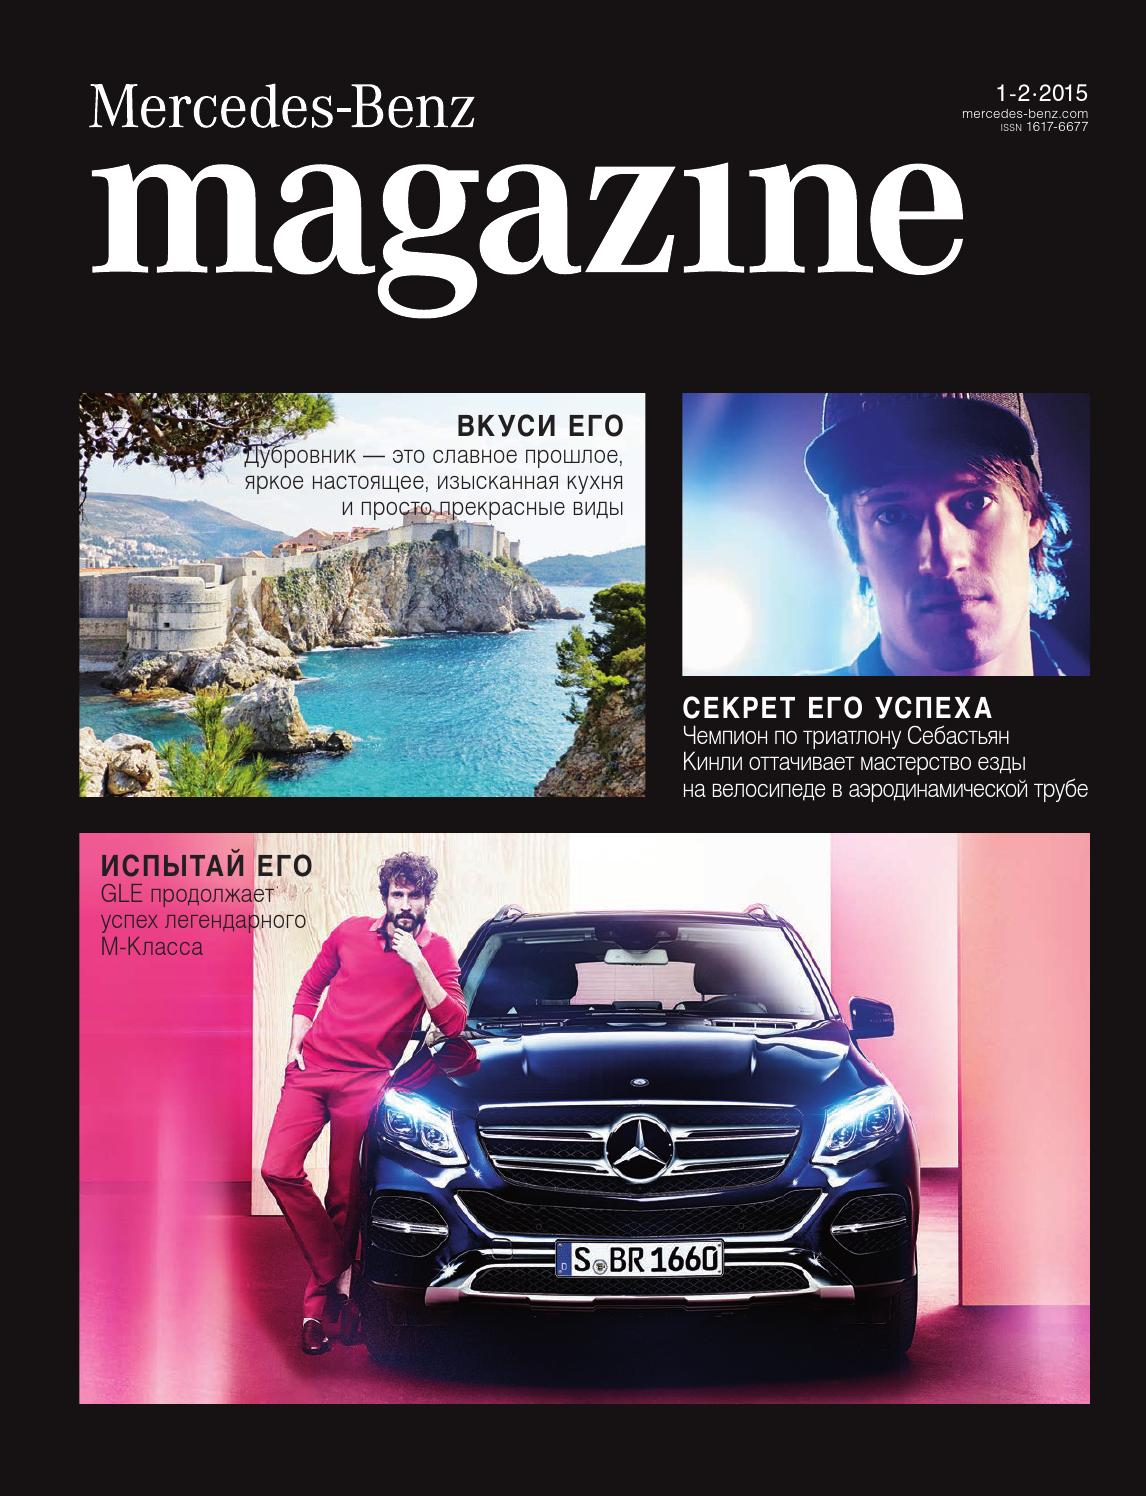 Mercedes benz magazine 1 2 2015 by icom issuu for Mercedes benz classic magazine